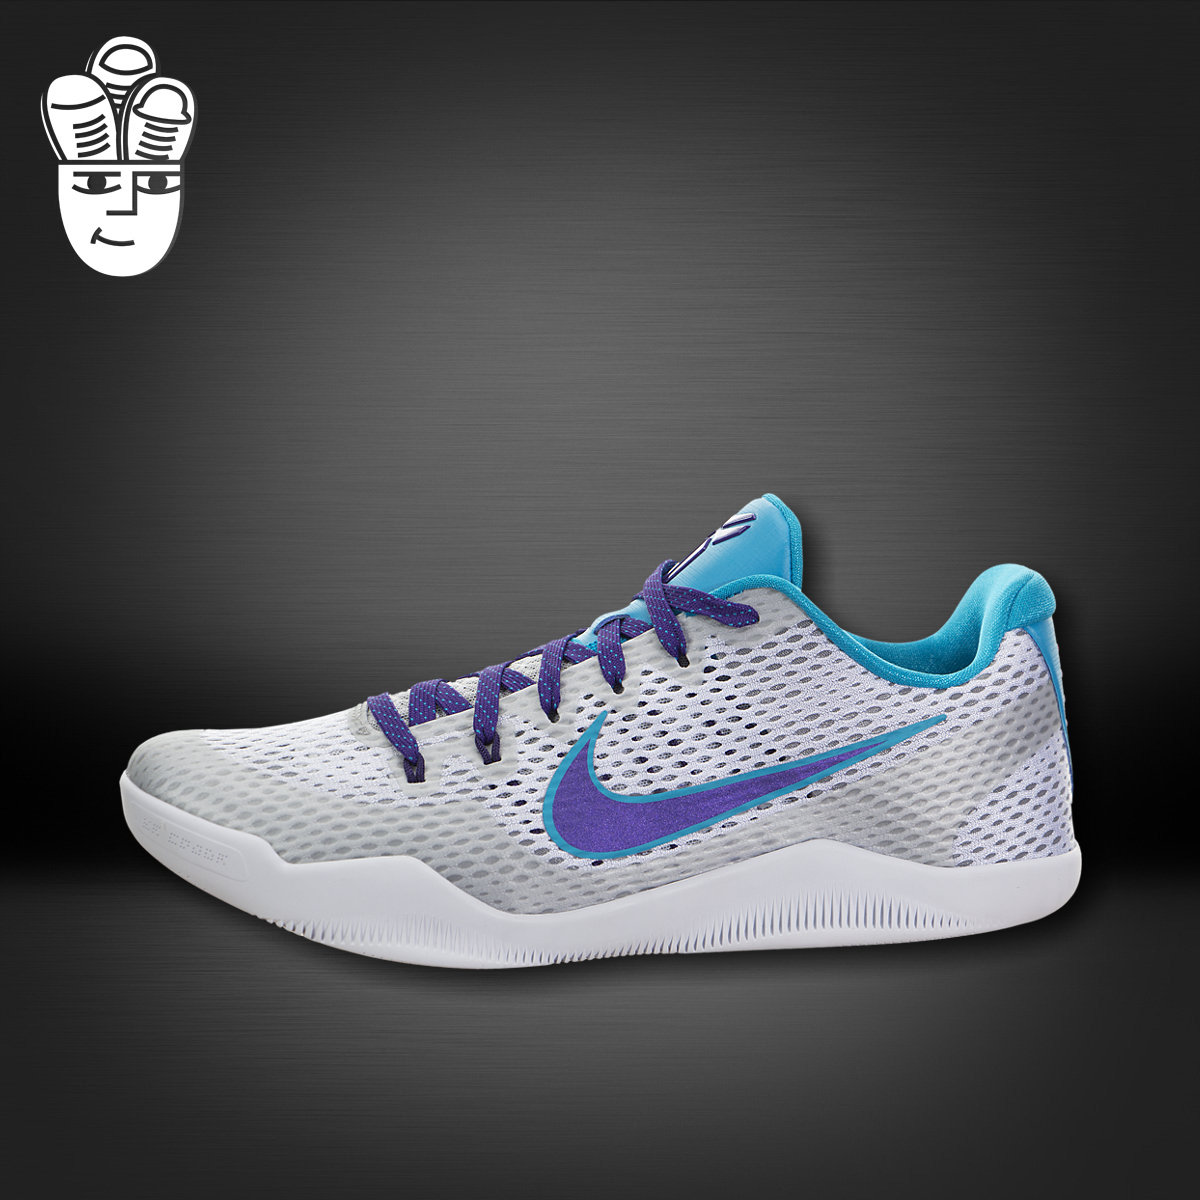 new styles d5633 a8949 Get Quotations · Nike kobe xi (11) nike kobe mens basketball shoes low to  help combat draft